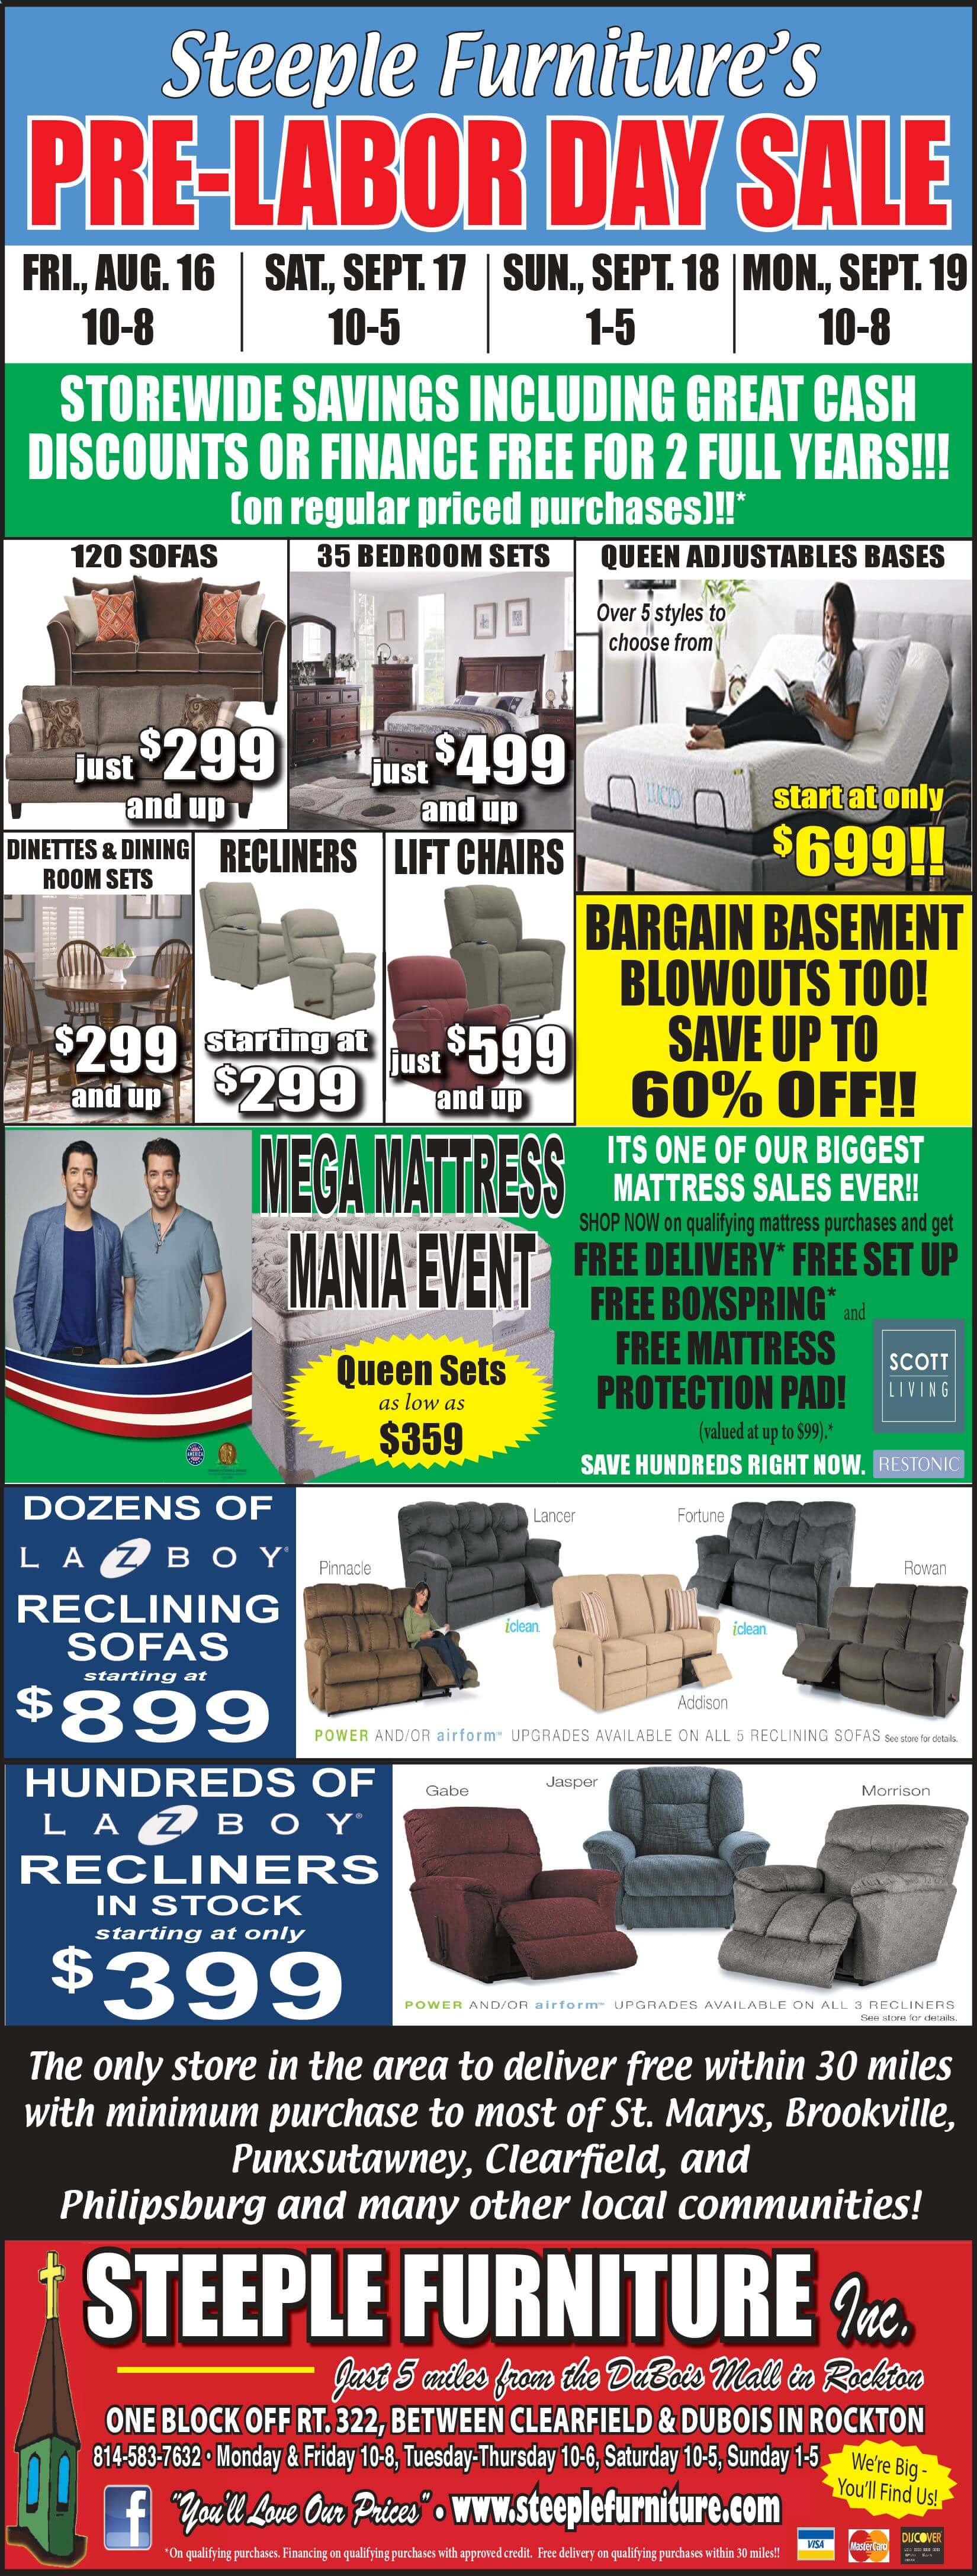 Presidential Day Sale at Steeple Furniture & Mattress in Rockton, PA